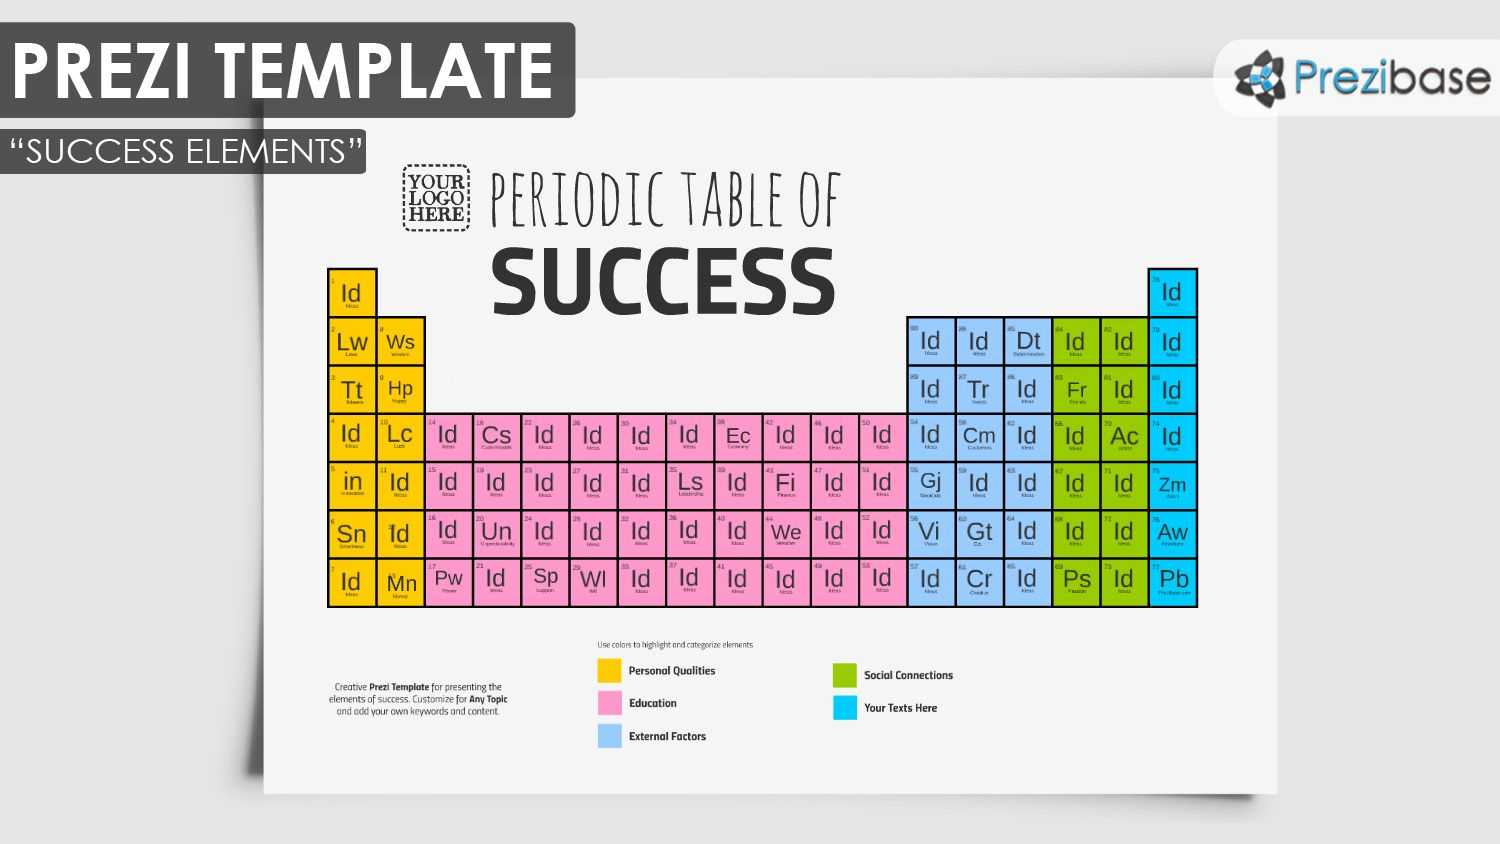 Periodic table of success ideas prezi template creative animoto periodic table of success ideas prezi template creative urtaz Choice Image